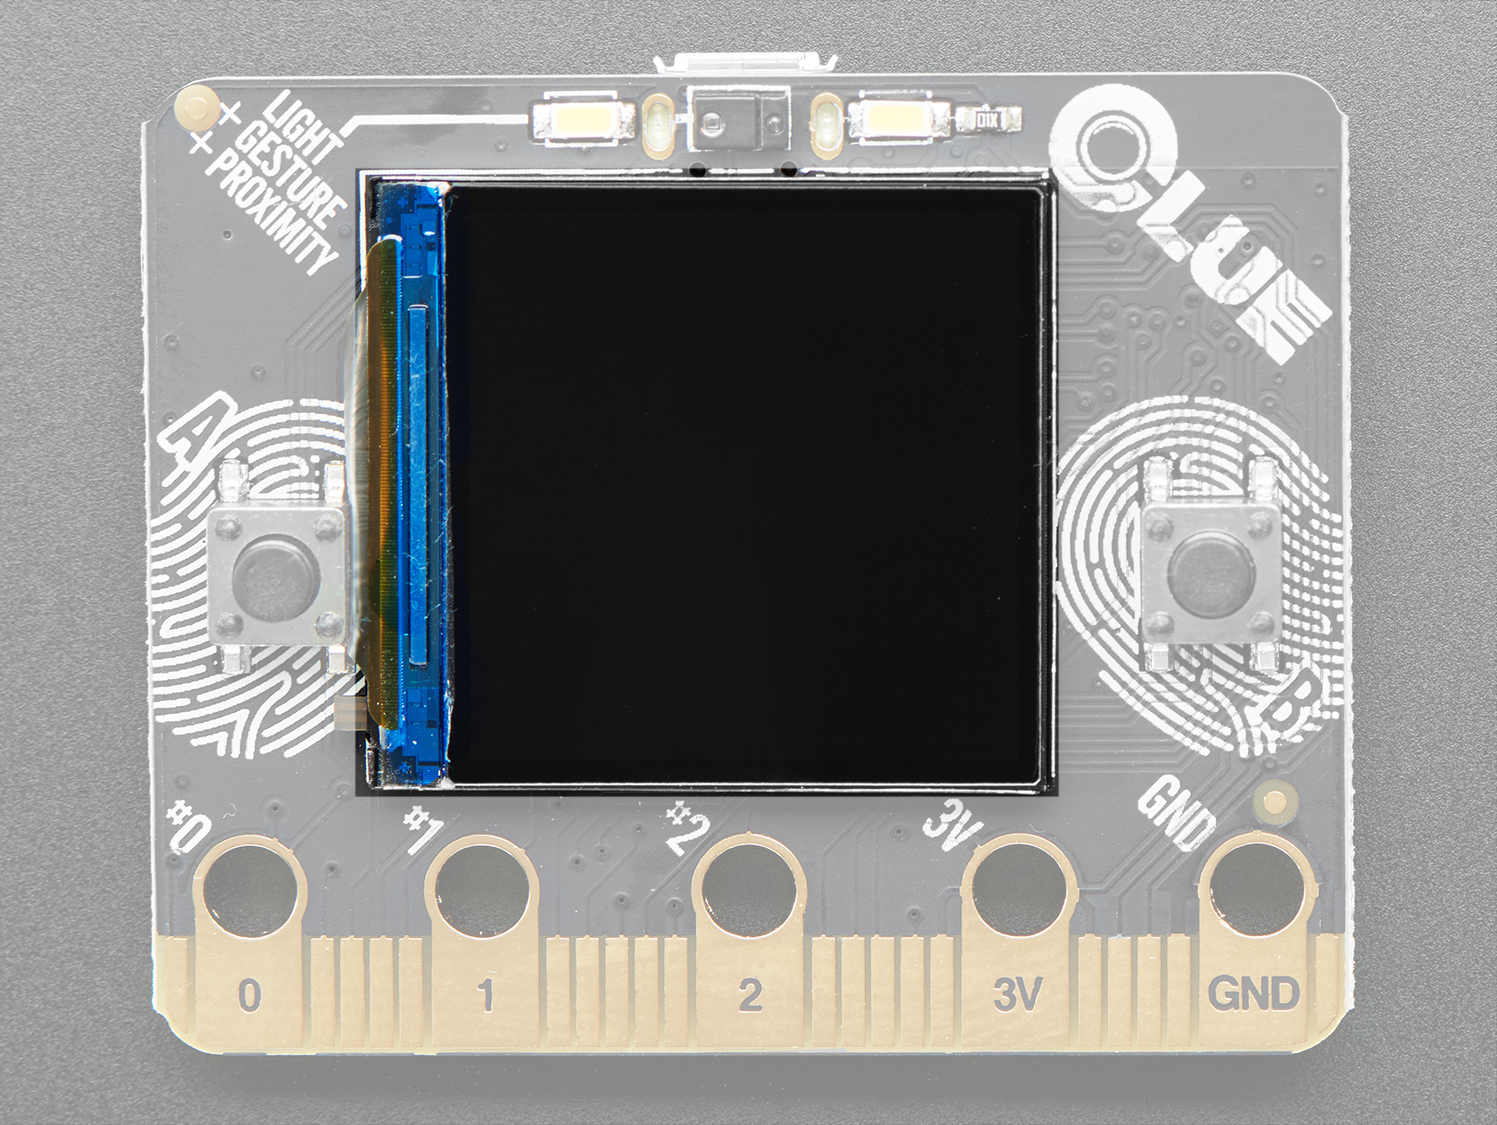 adafruit_products_Clue_top_pinouts_display.png